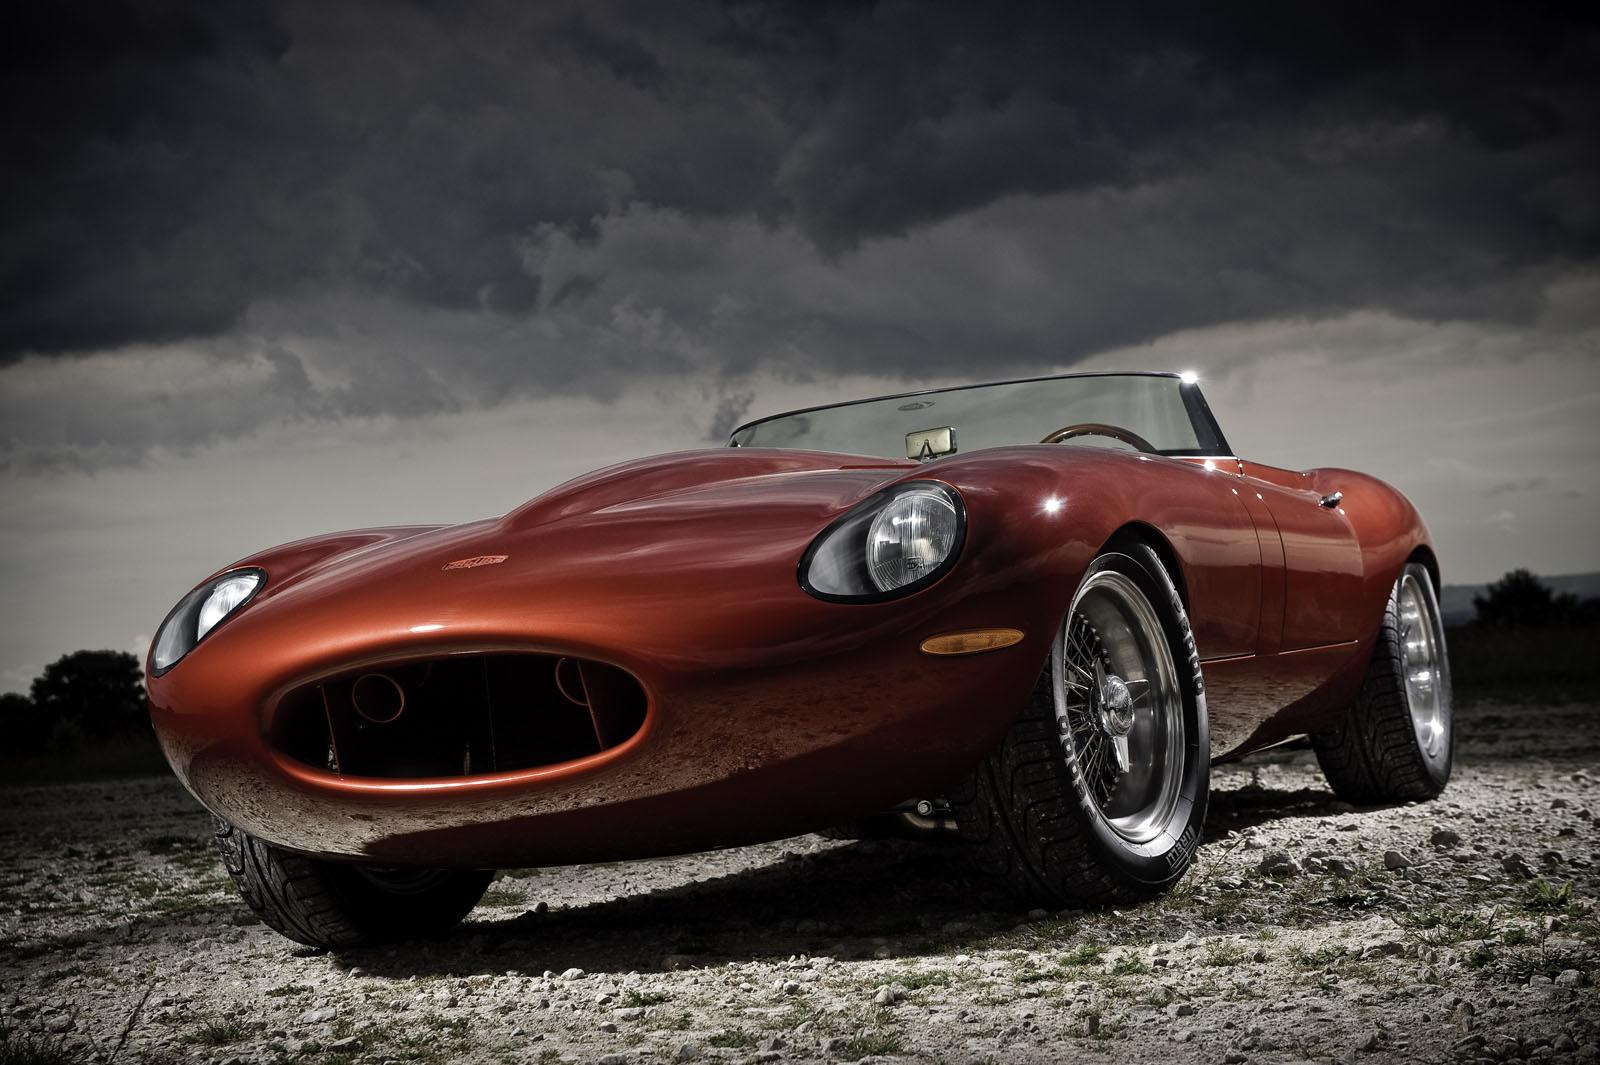 Eagle E Type Lightweight Speedster 4 Eagle E Type Lightweight Speedster to Be Shown at the Salon Privé in London